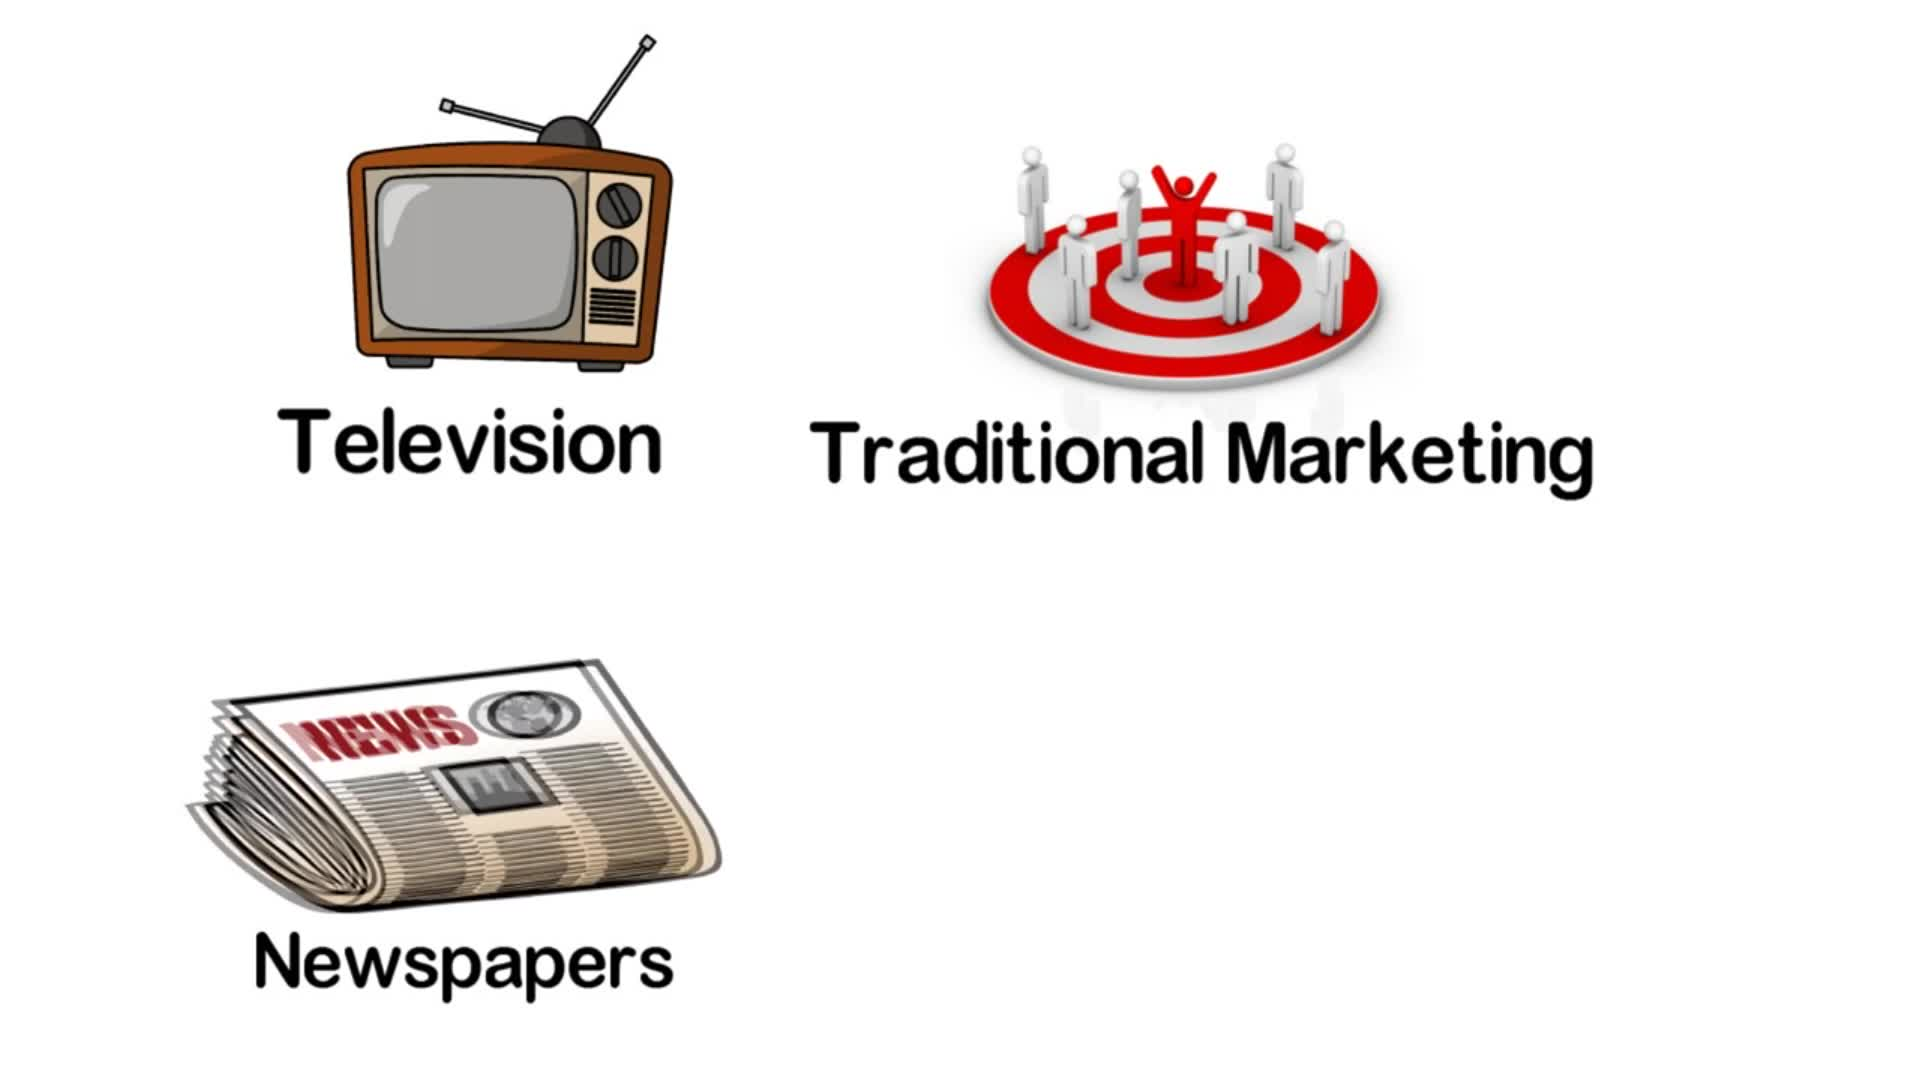 Television is Changing – Expanding to more Outlets